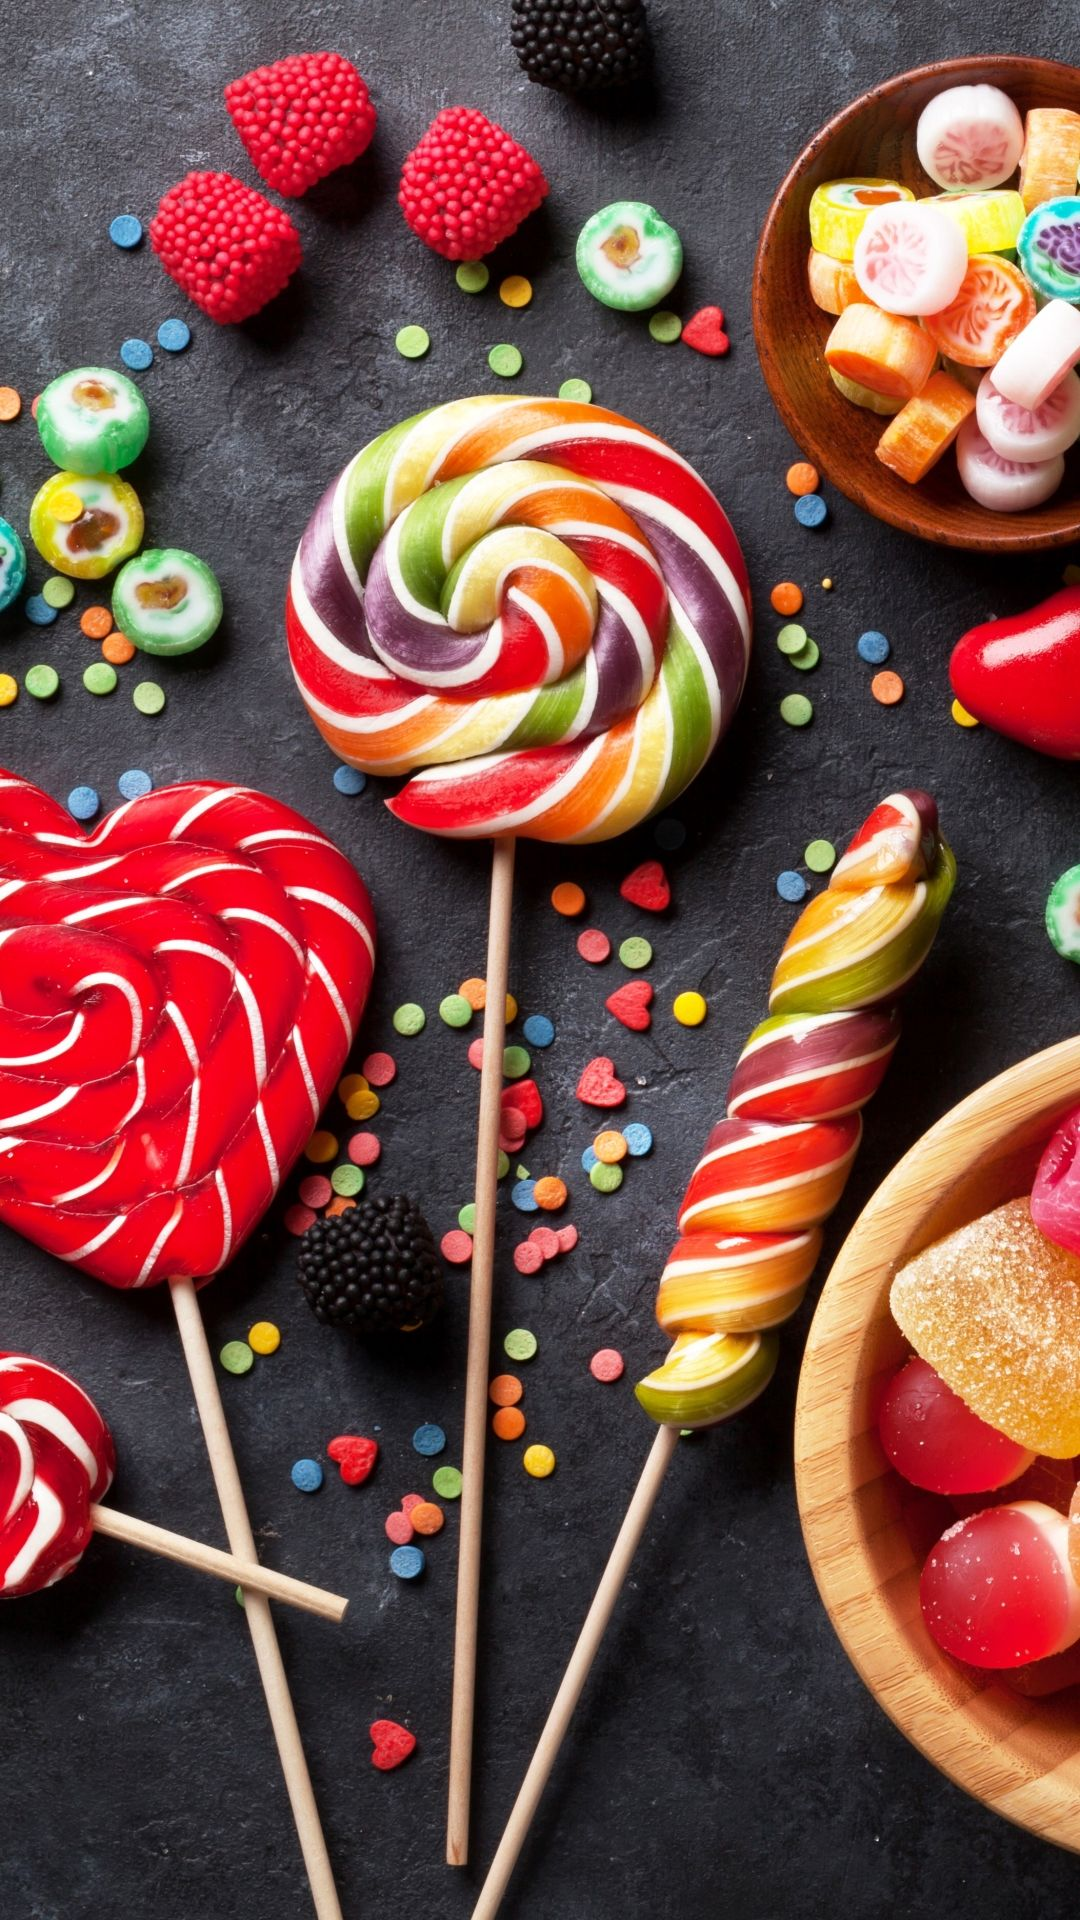 Awesome 8 Food Wallpapers Widescreen For Your Android Or Iphone Wallpapers Android Iphone Wallpaper Food Wallpaper Candy Recipes Candy Photography